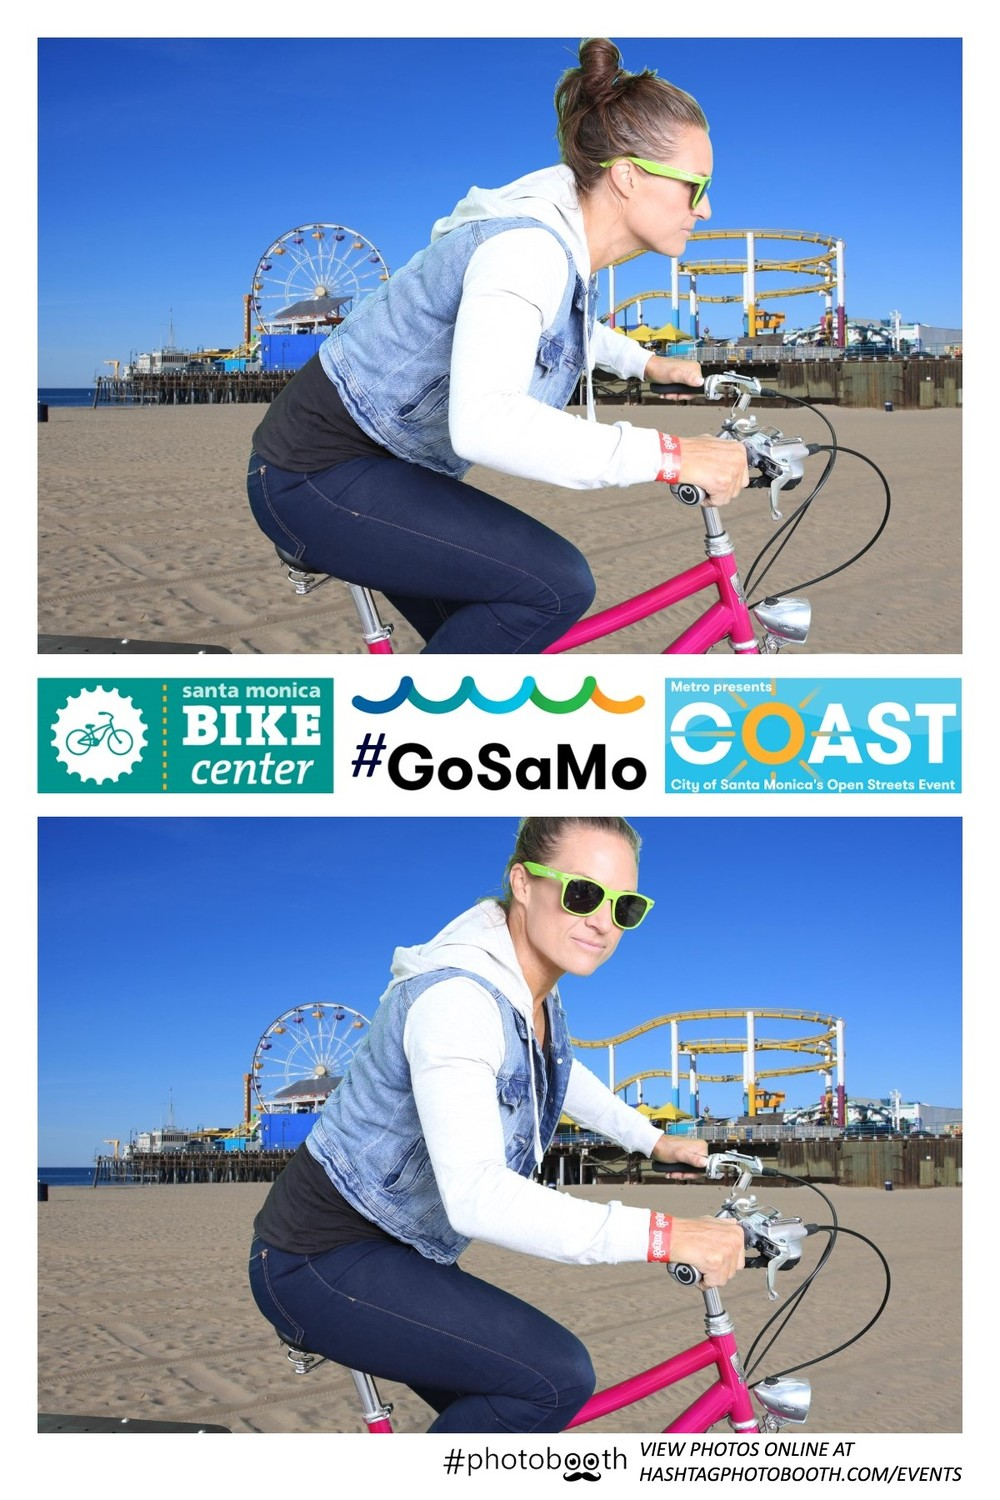 #GoSaMo & Santa Monica Bike Center